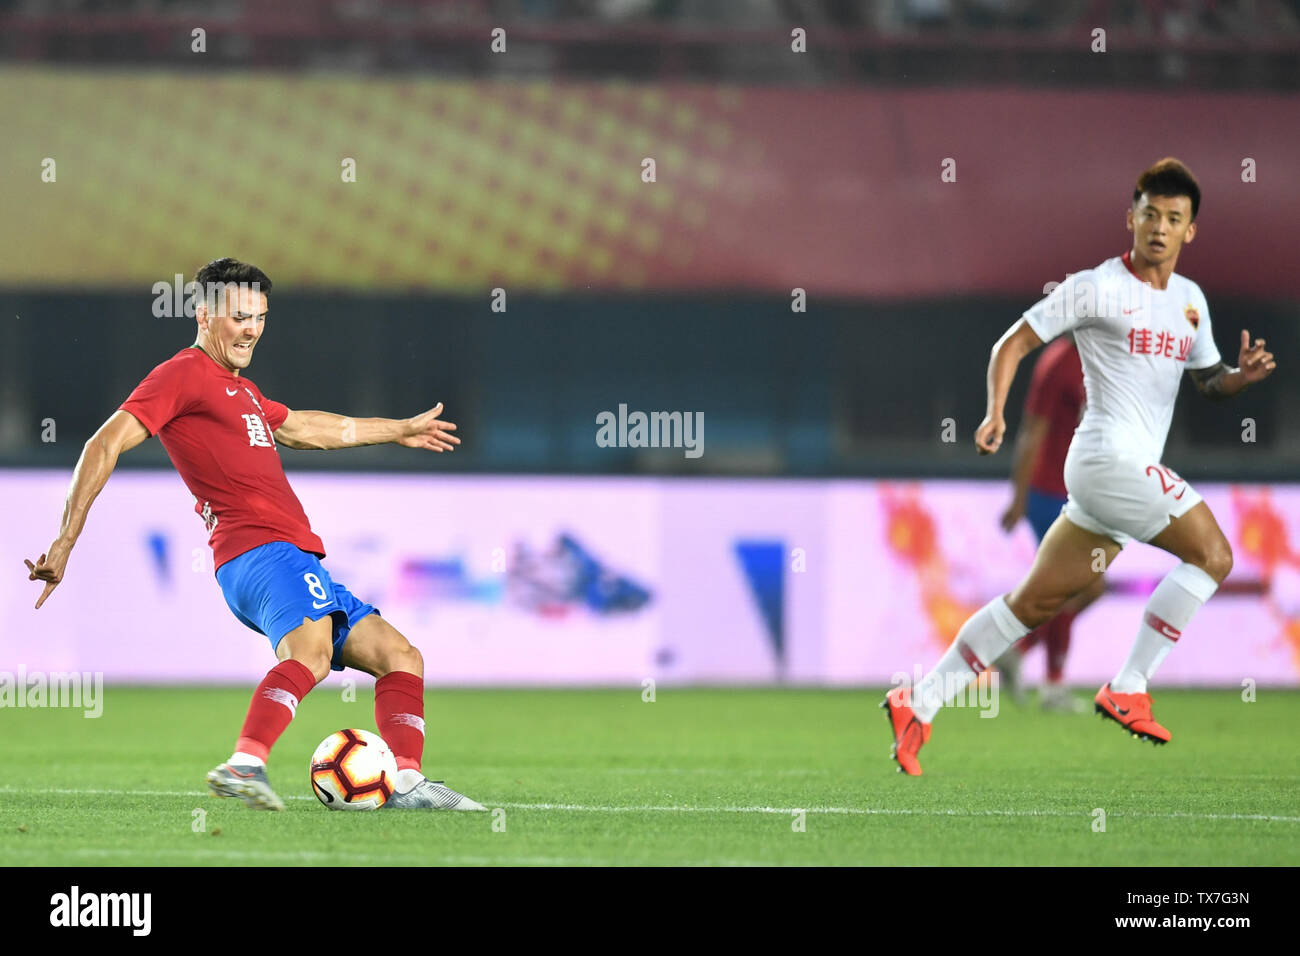 English-born Taiwanese football player Tim Chow, left, of Henan Jianye passes the ball against a player of Shenzhen F.C. in their 14th round match during the 2019 Chinese Football Association Super League (CSL) in Zhengzhou city, central China's Henan province, 22 June 2019. Henan Jianye defeated Shenzhen F.C. 1-0. Stock Photo